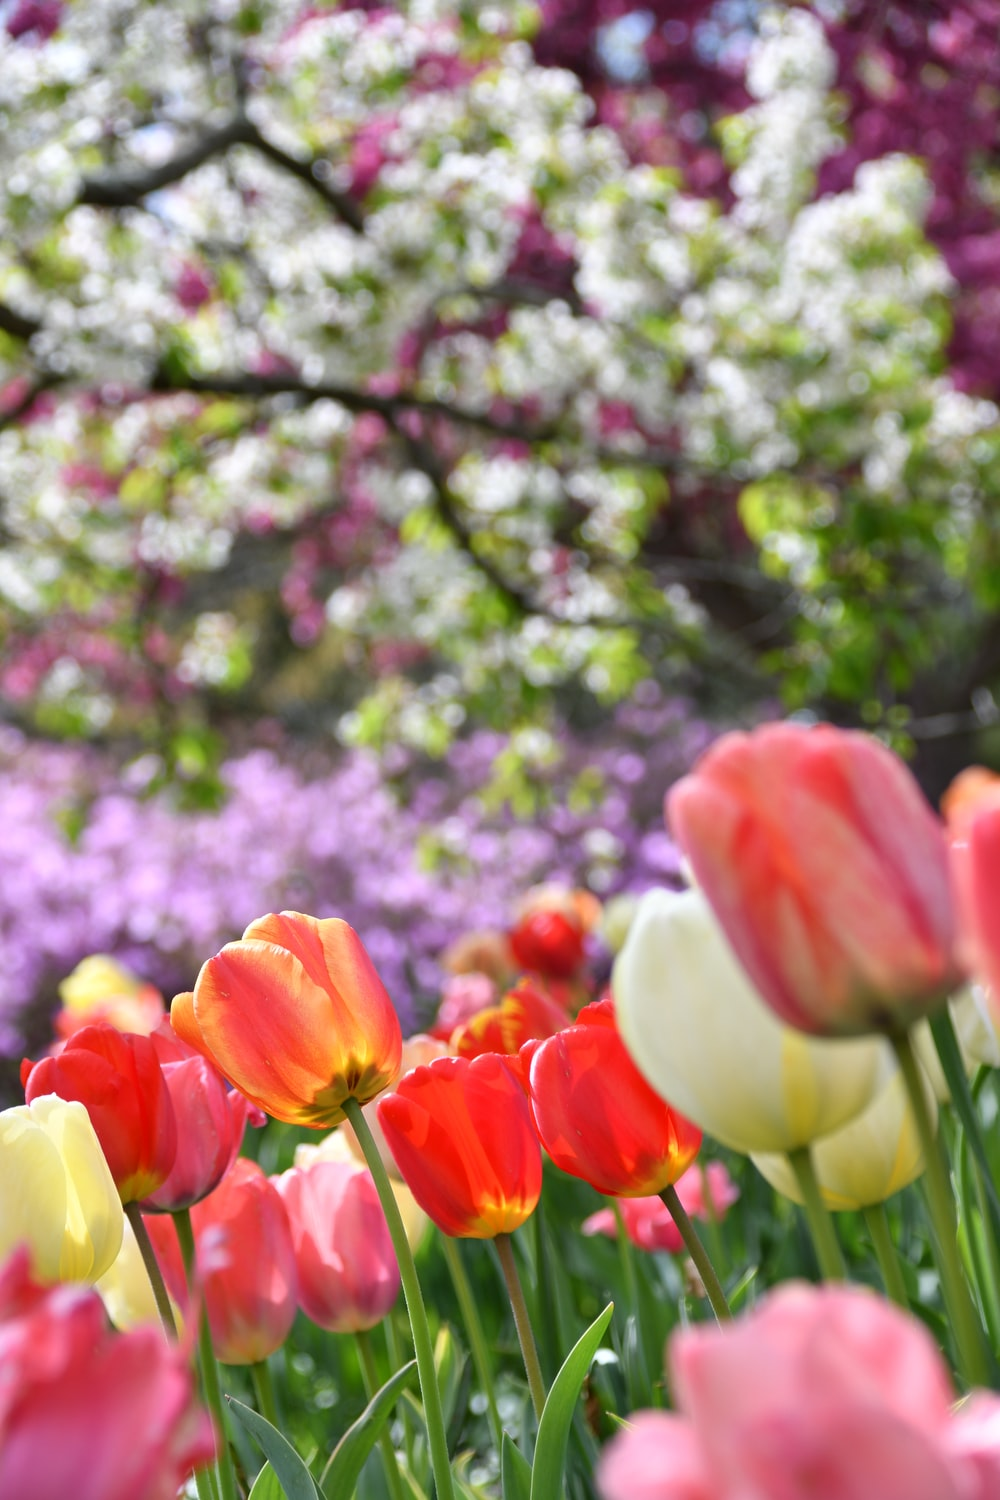 red and yellow tulips in bloom during daytime